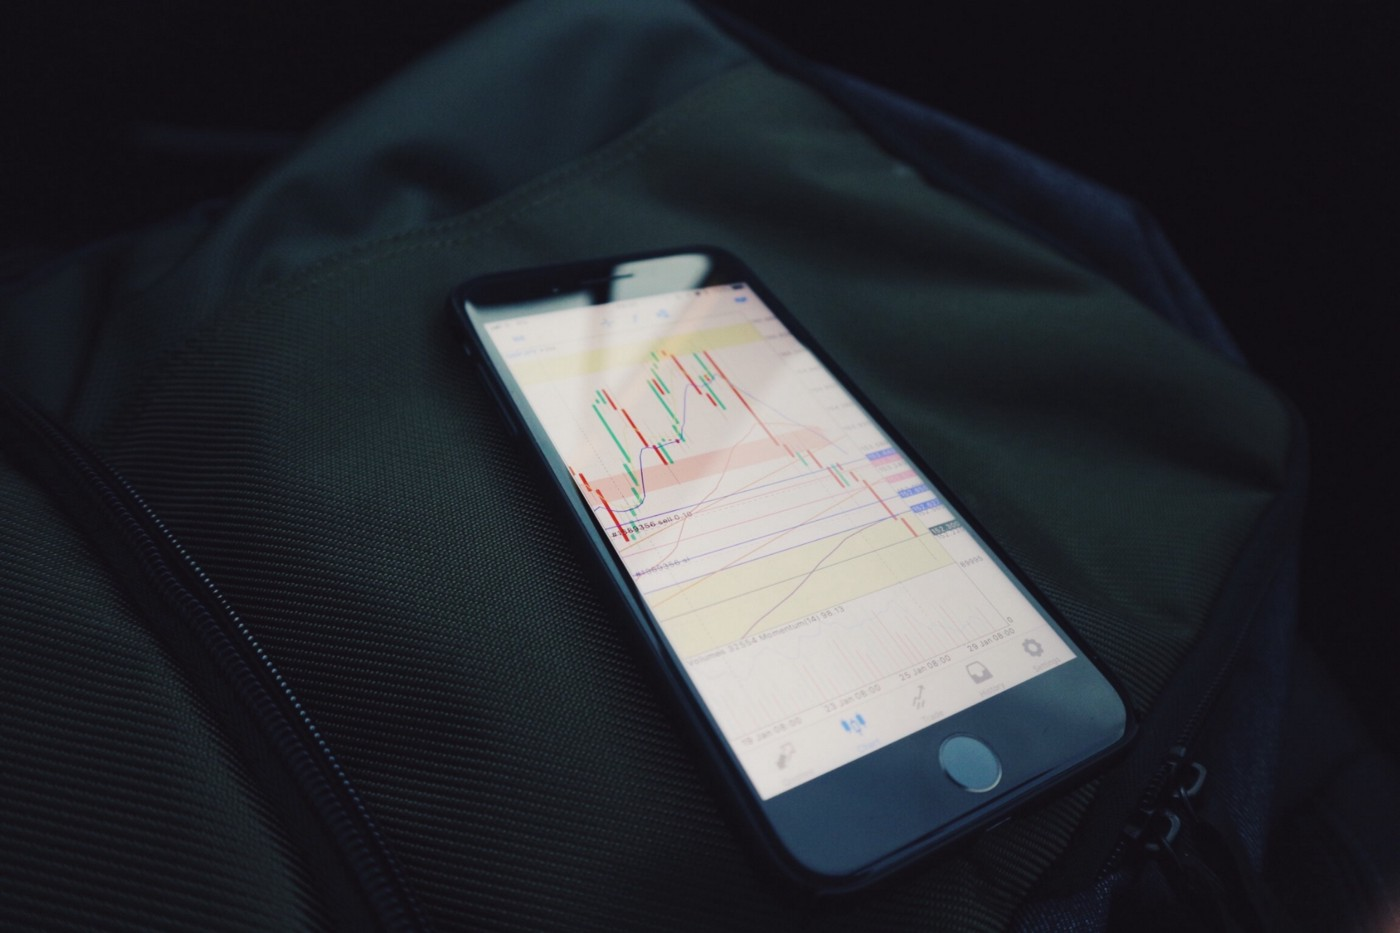 Stock investment tracking Photo by Mark Finn on Unsplash